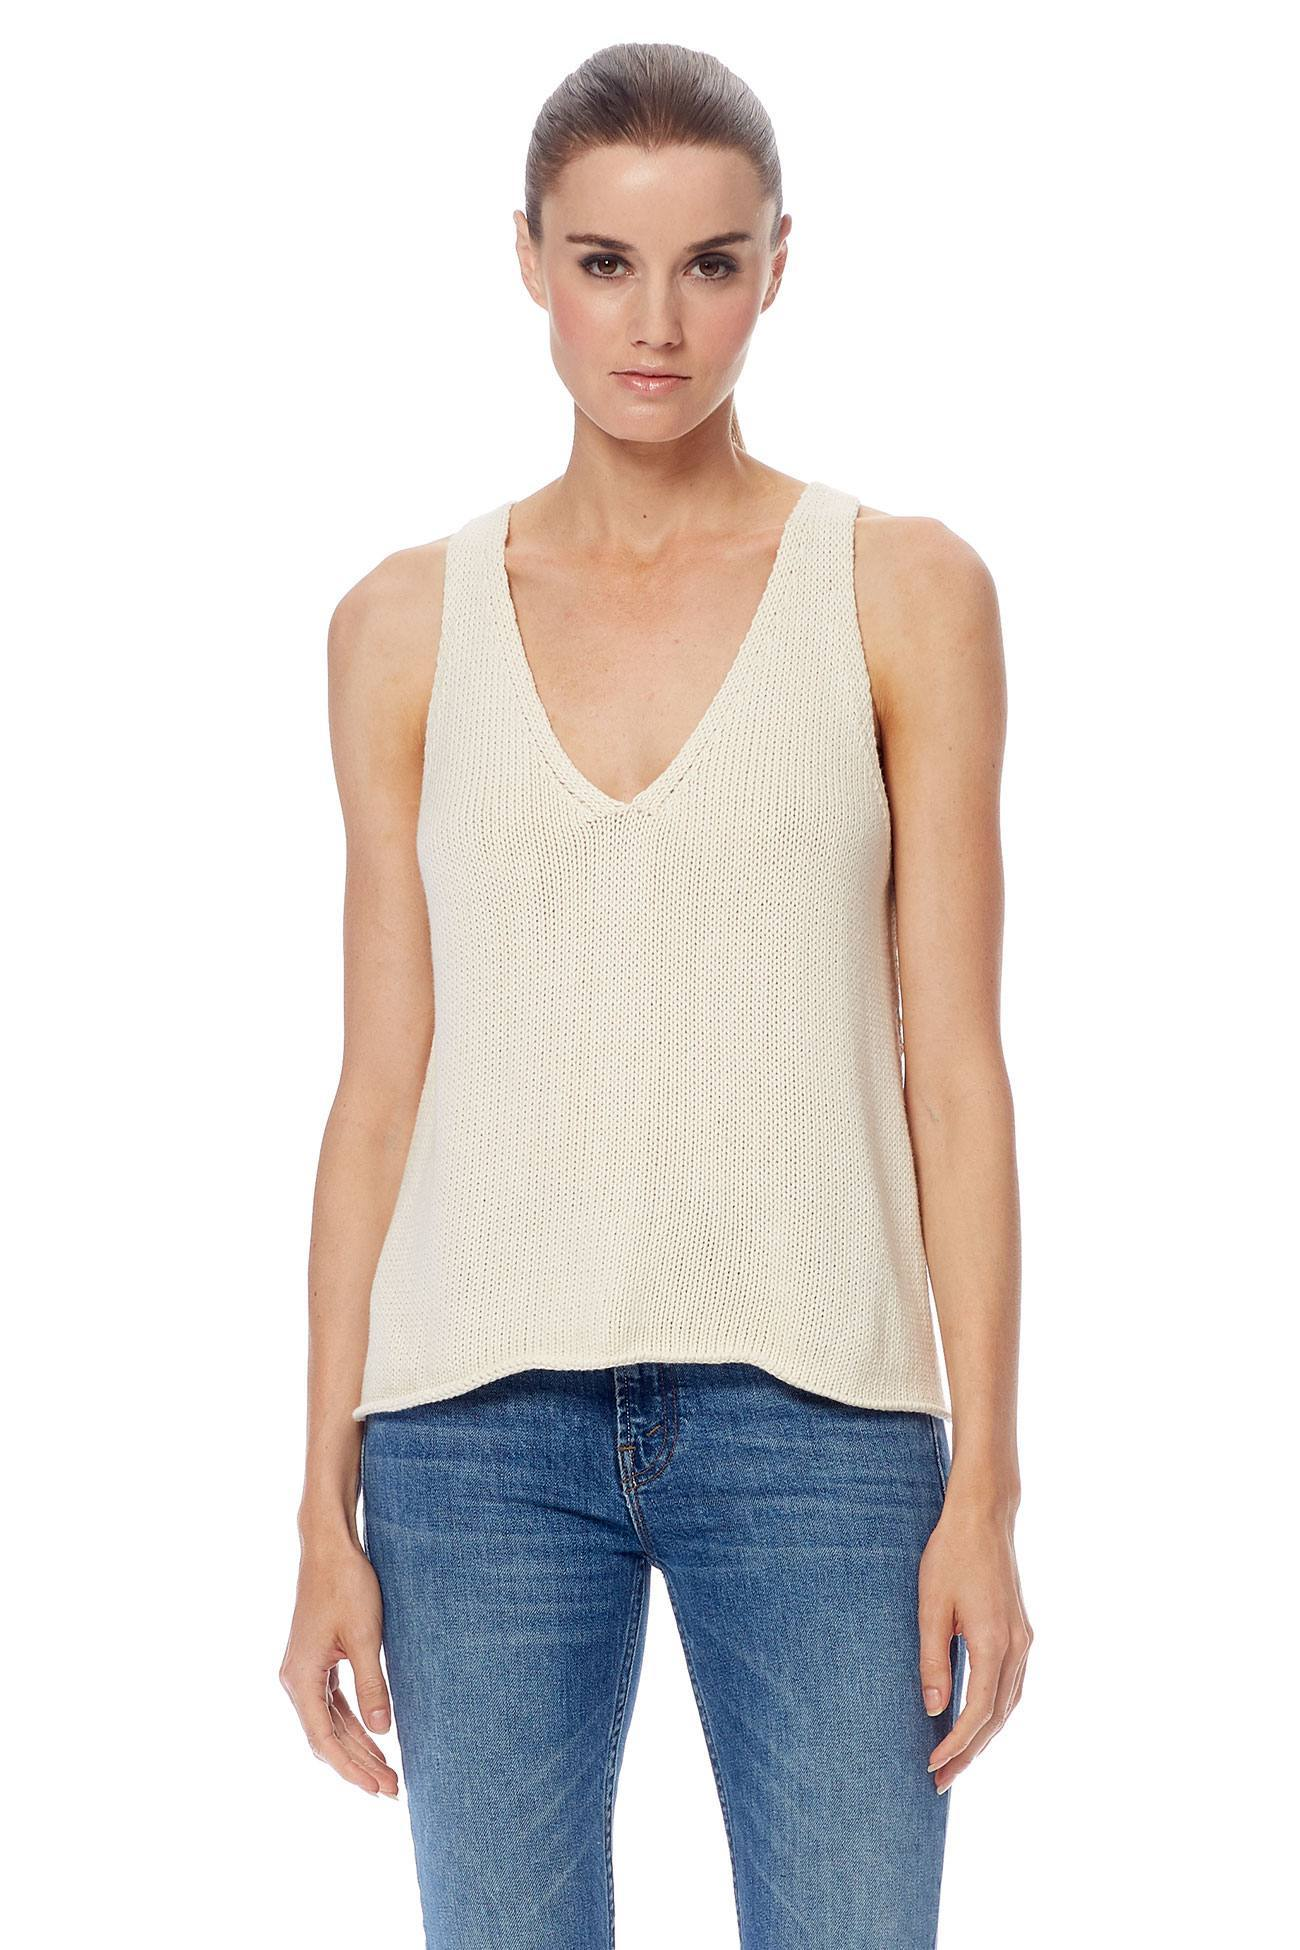 Cooper V-Neck Cami Tank - Cream